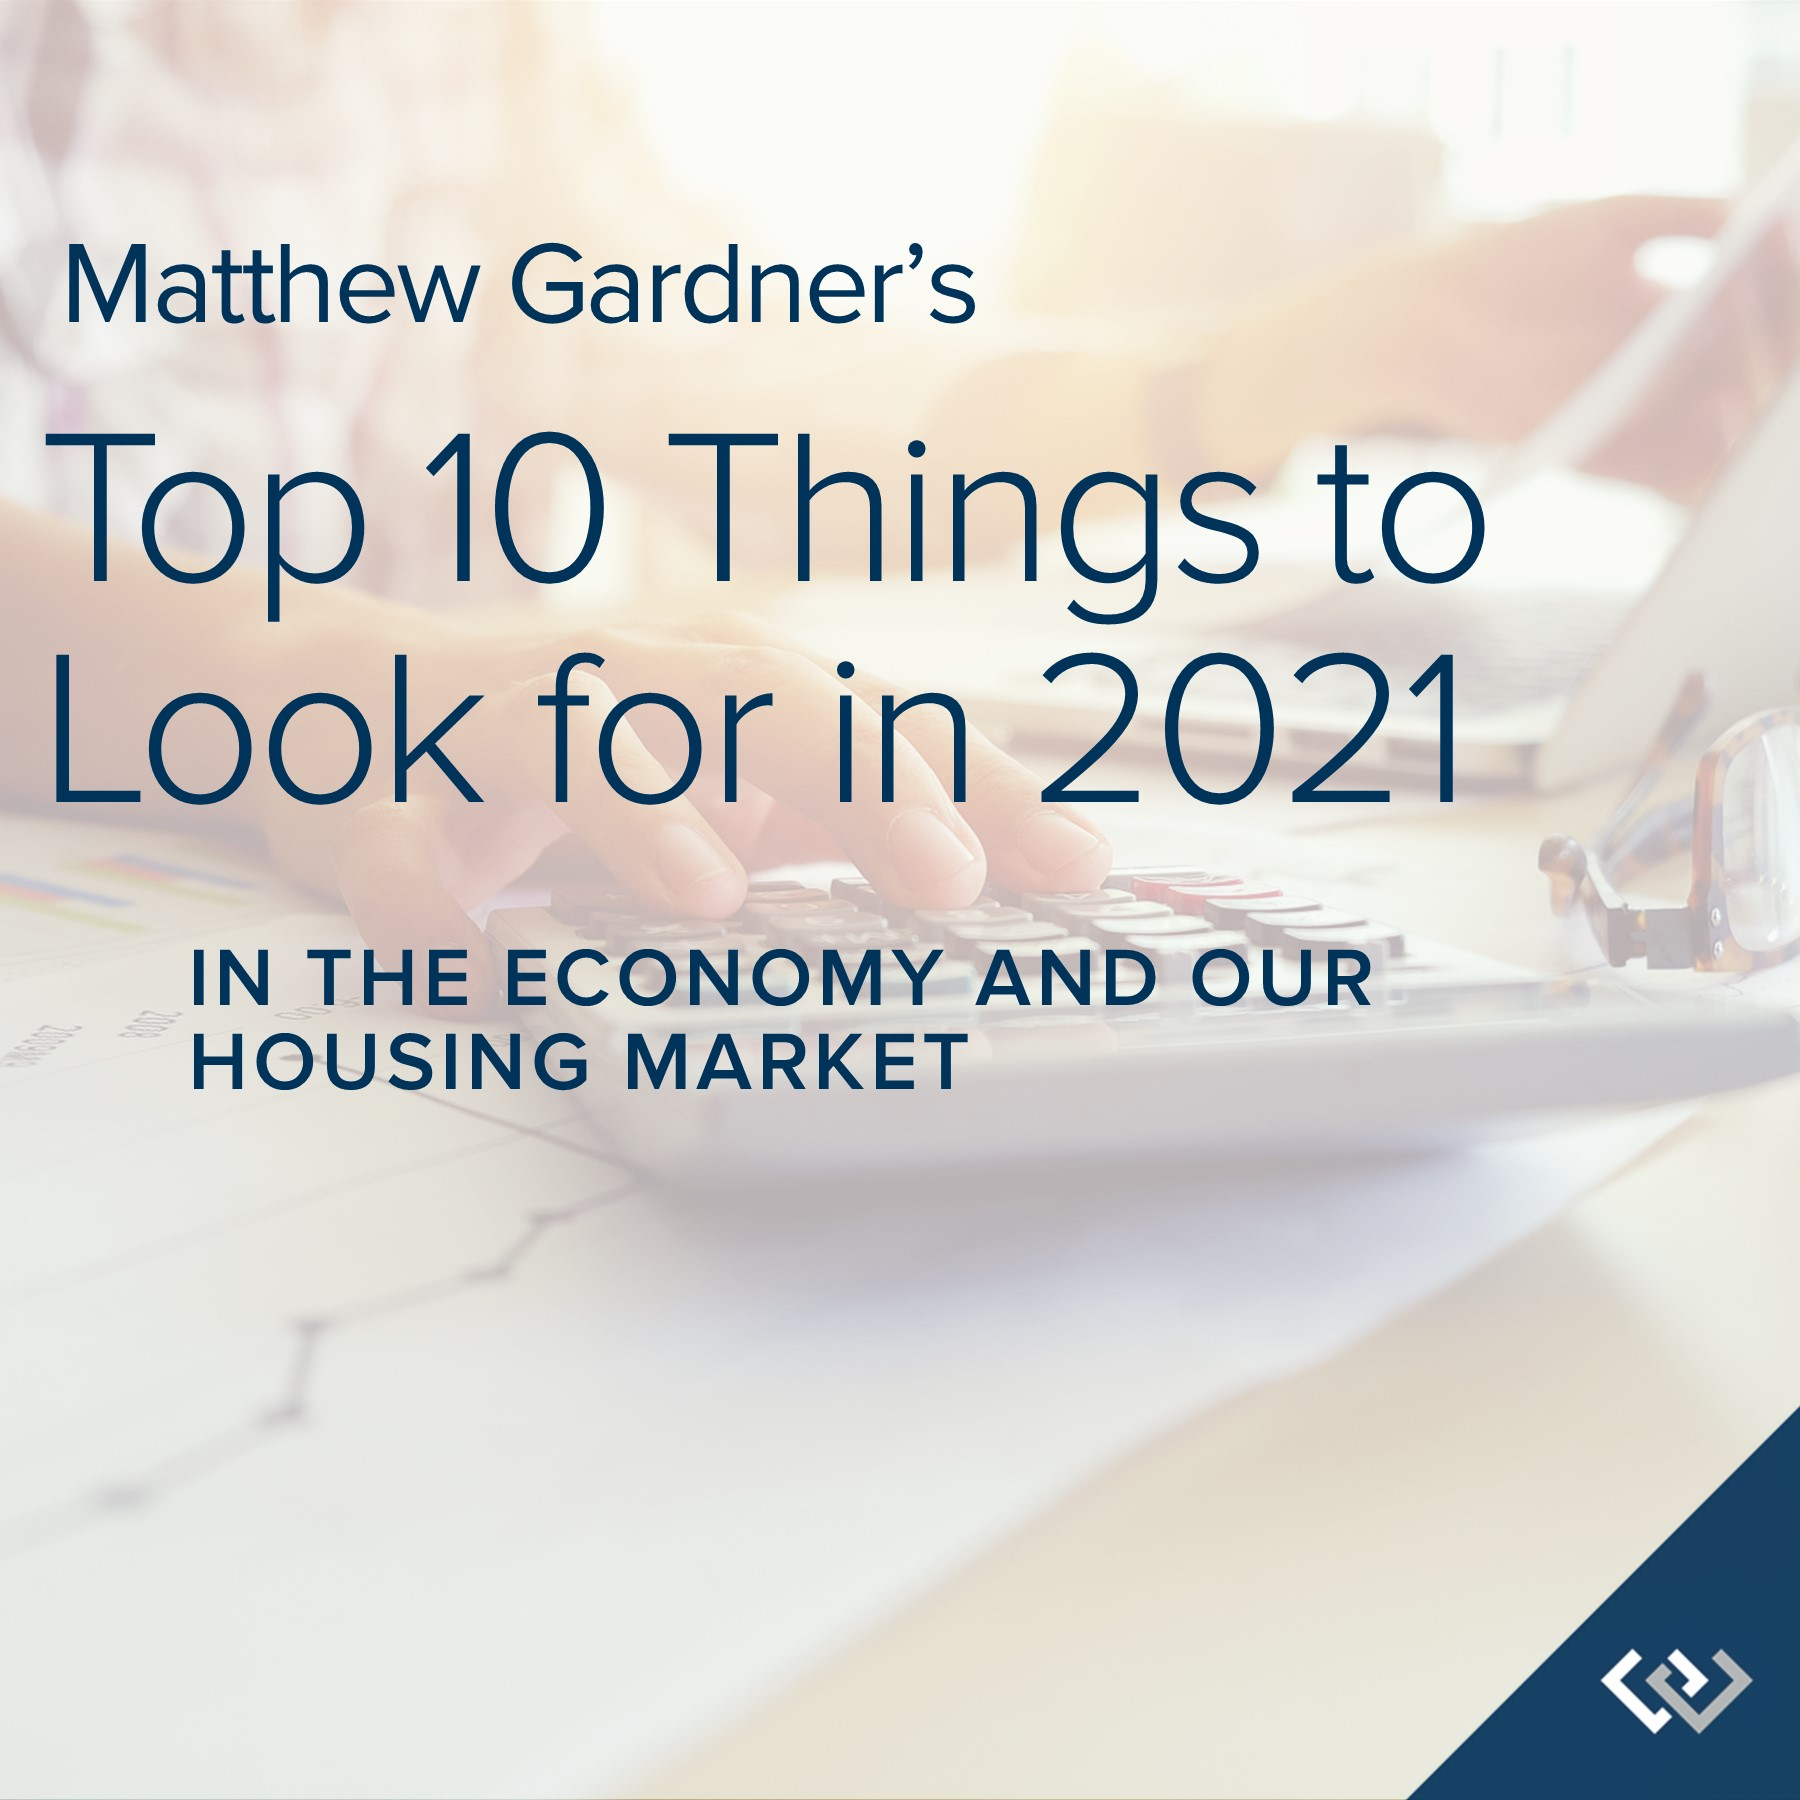 Newsletter: Matthew Gardner's Top 10 Things to Look for in 2021 in the Economy and Our Housing Market